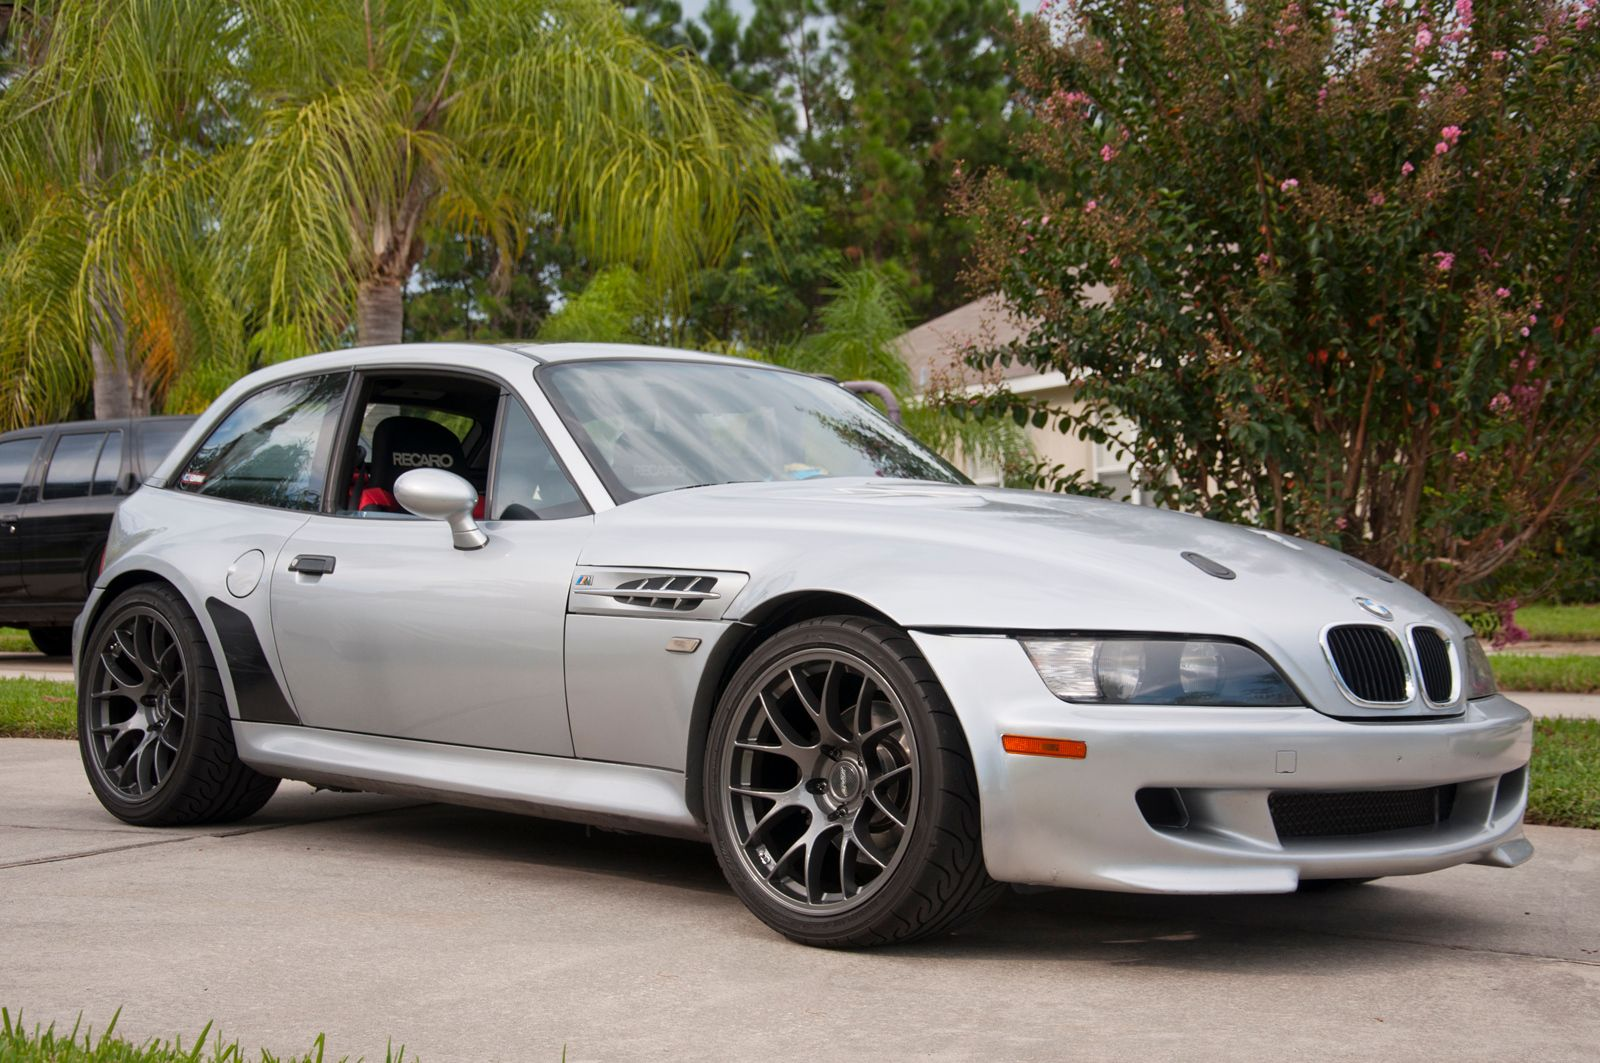 Z3m With Bmw Wheels And Custom Front Bumper Clown Shoe